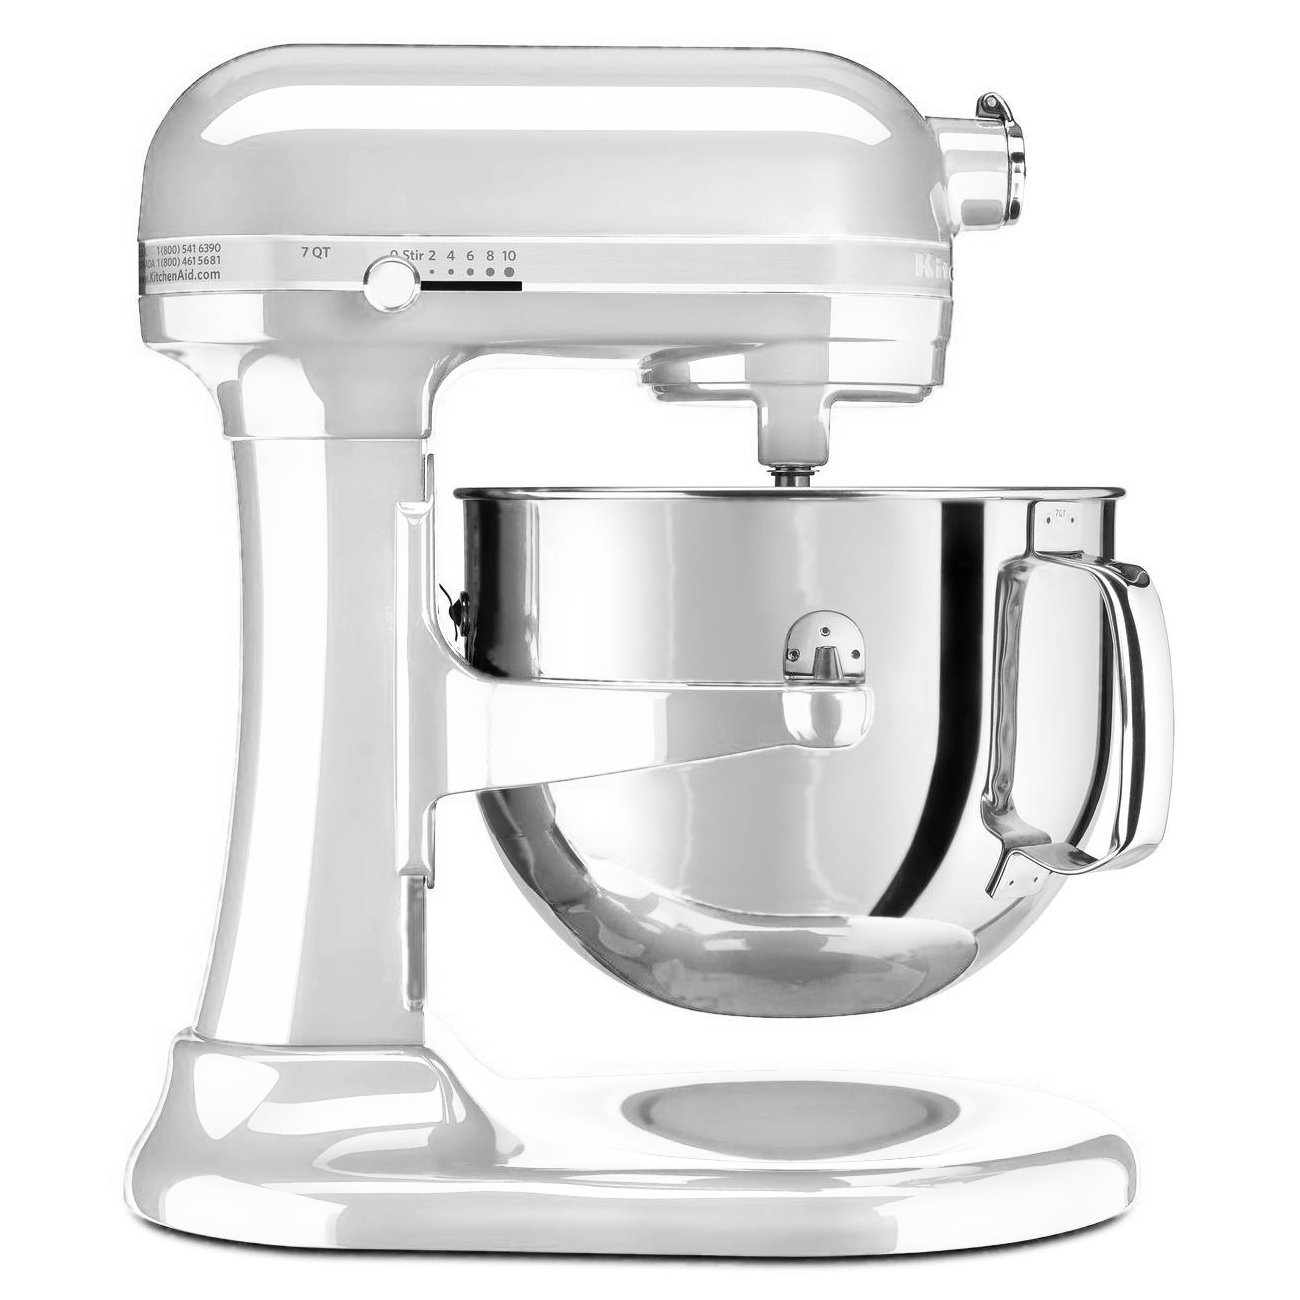 KitchenAid RRKSM7581FP 7-Quart Pro Line Stand Mixer Frosted Pearl White (CERTIFIED REFURBISHED)